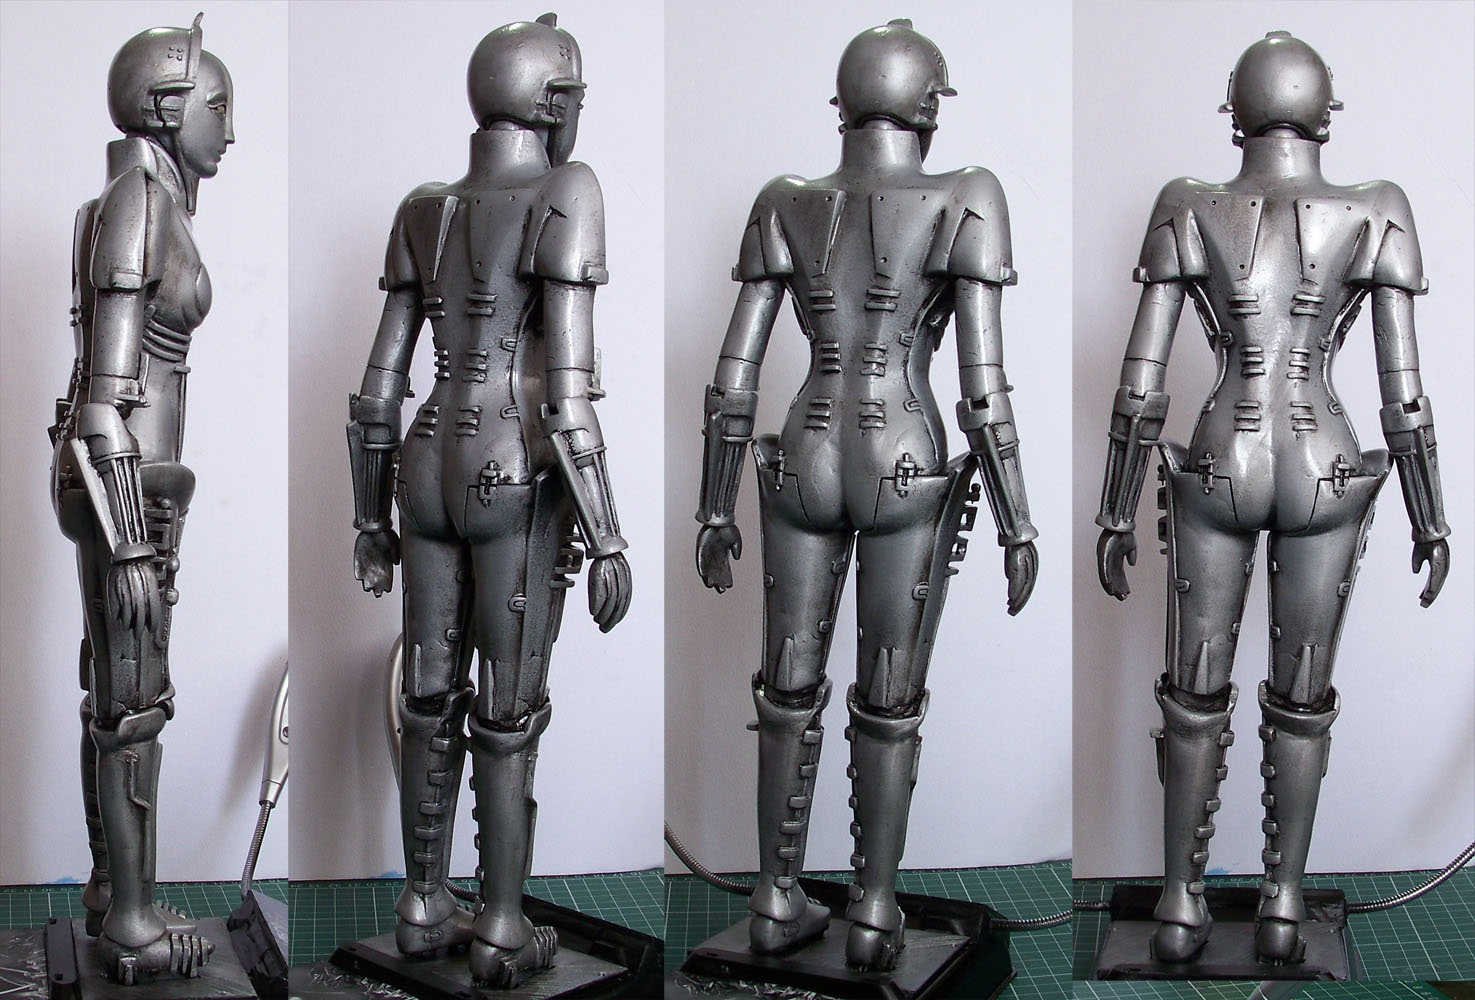 Rebuilt Robot from Fritz Lang's 1927 film Metropolis after additional research.